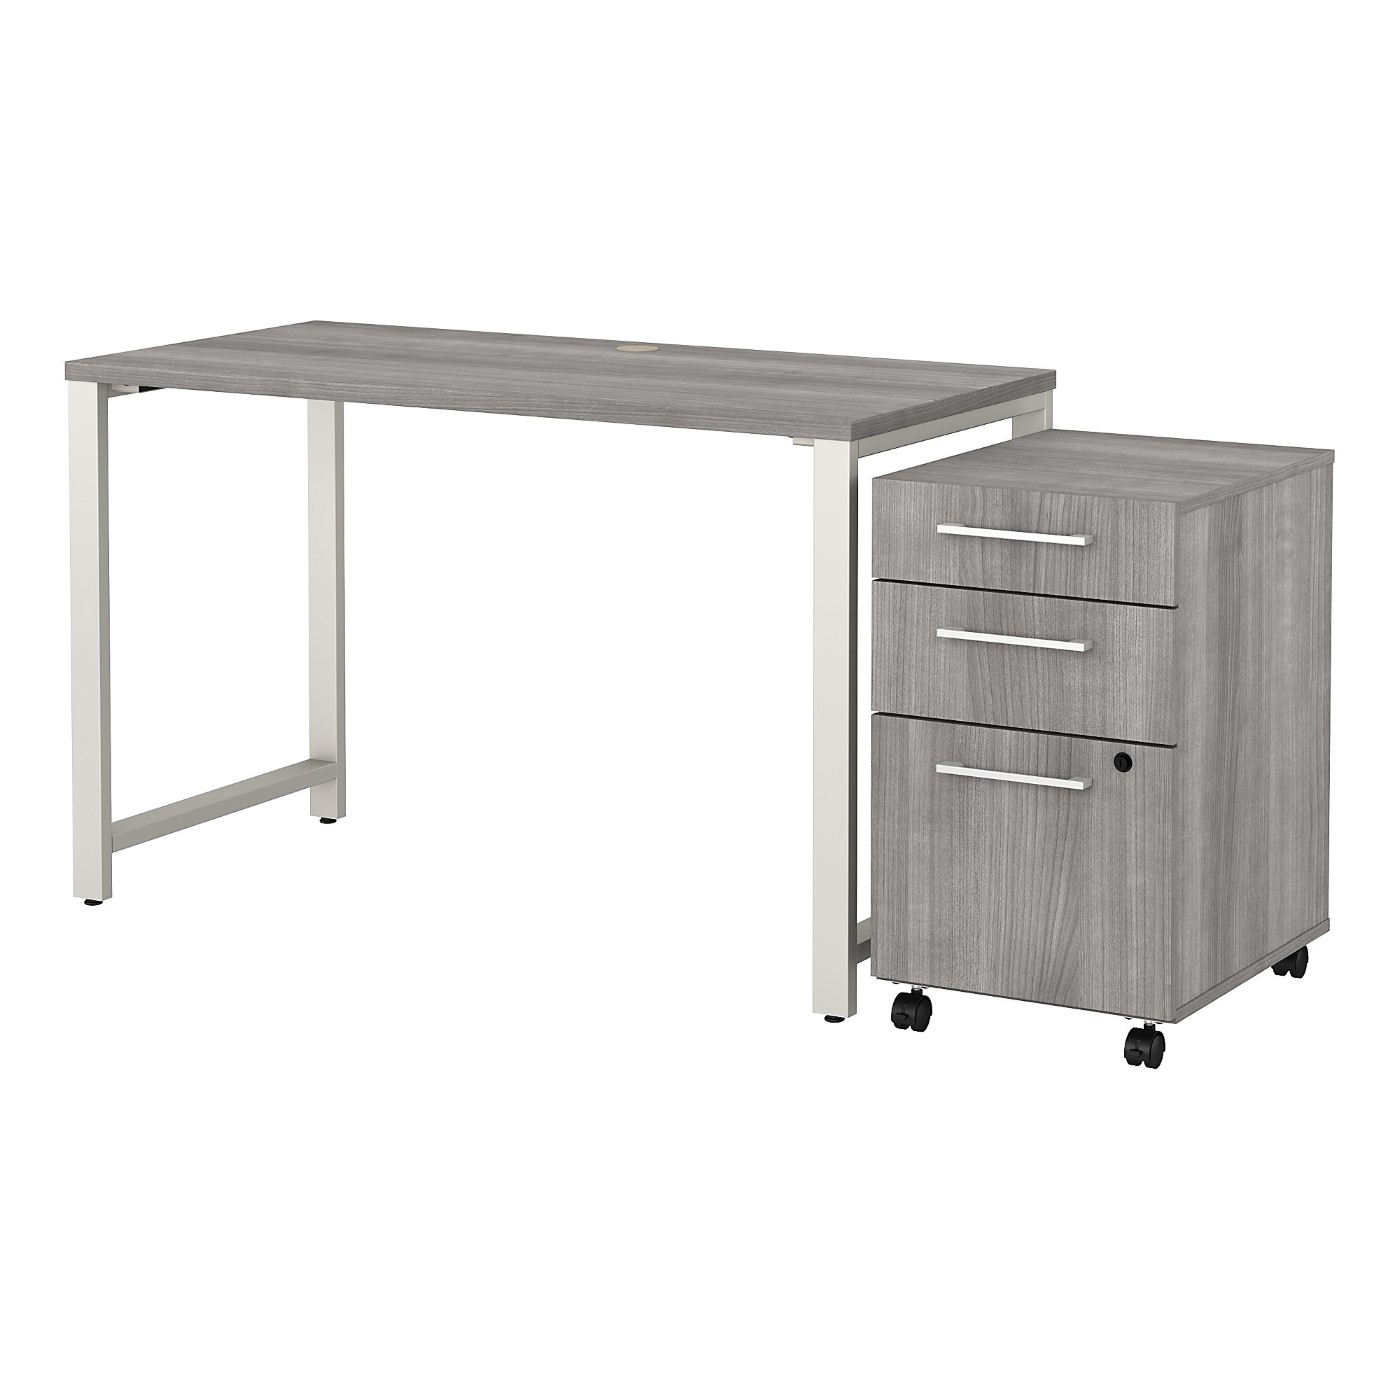 BUSH BUSINESS FURNITURE 400 SERIES 48W X 24D TABLE DESK WITH 3 DRAWER MOBILE FILE CABINET. FREE SHIPPING